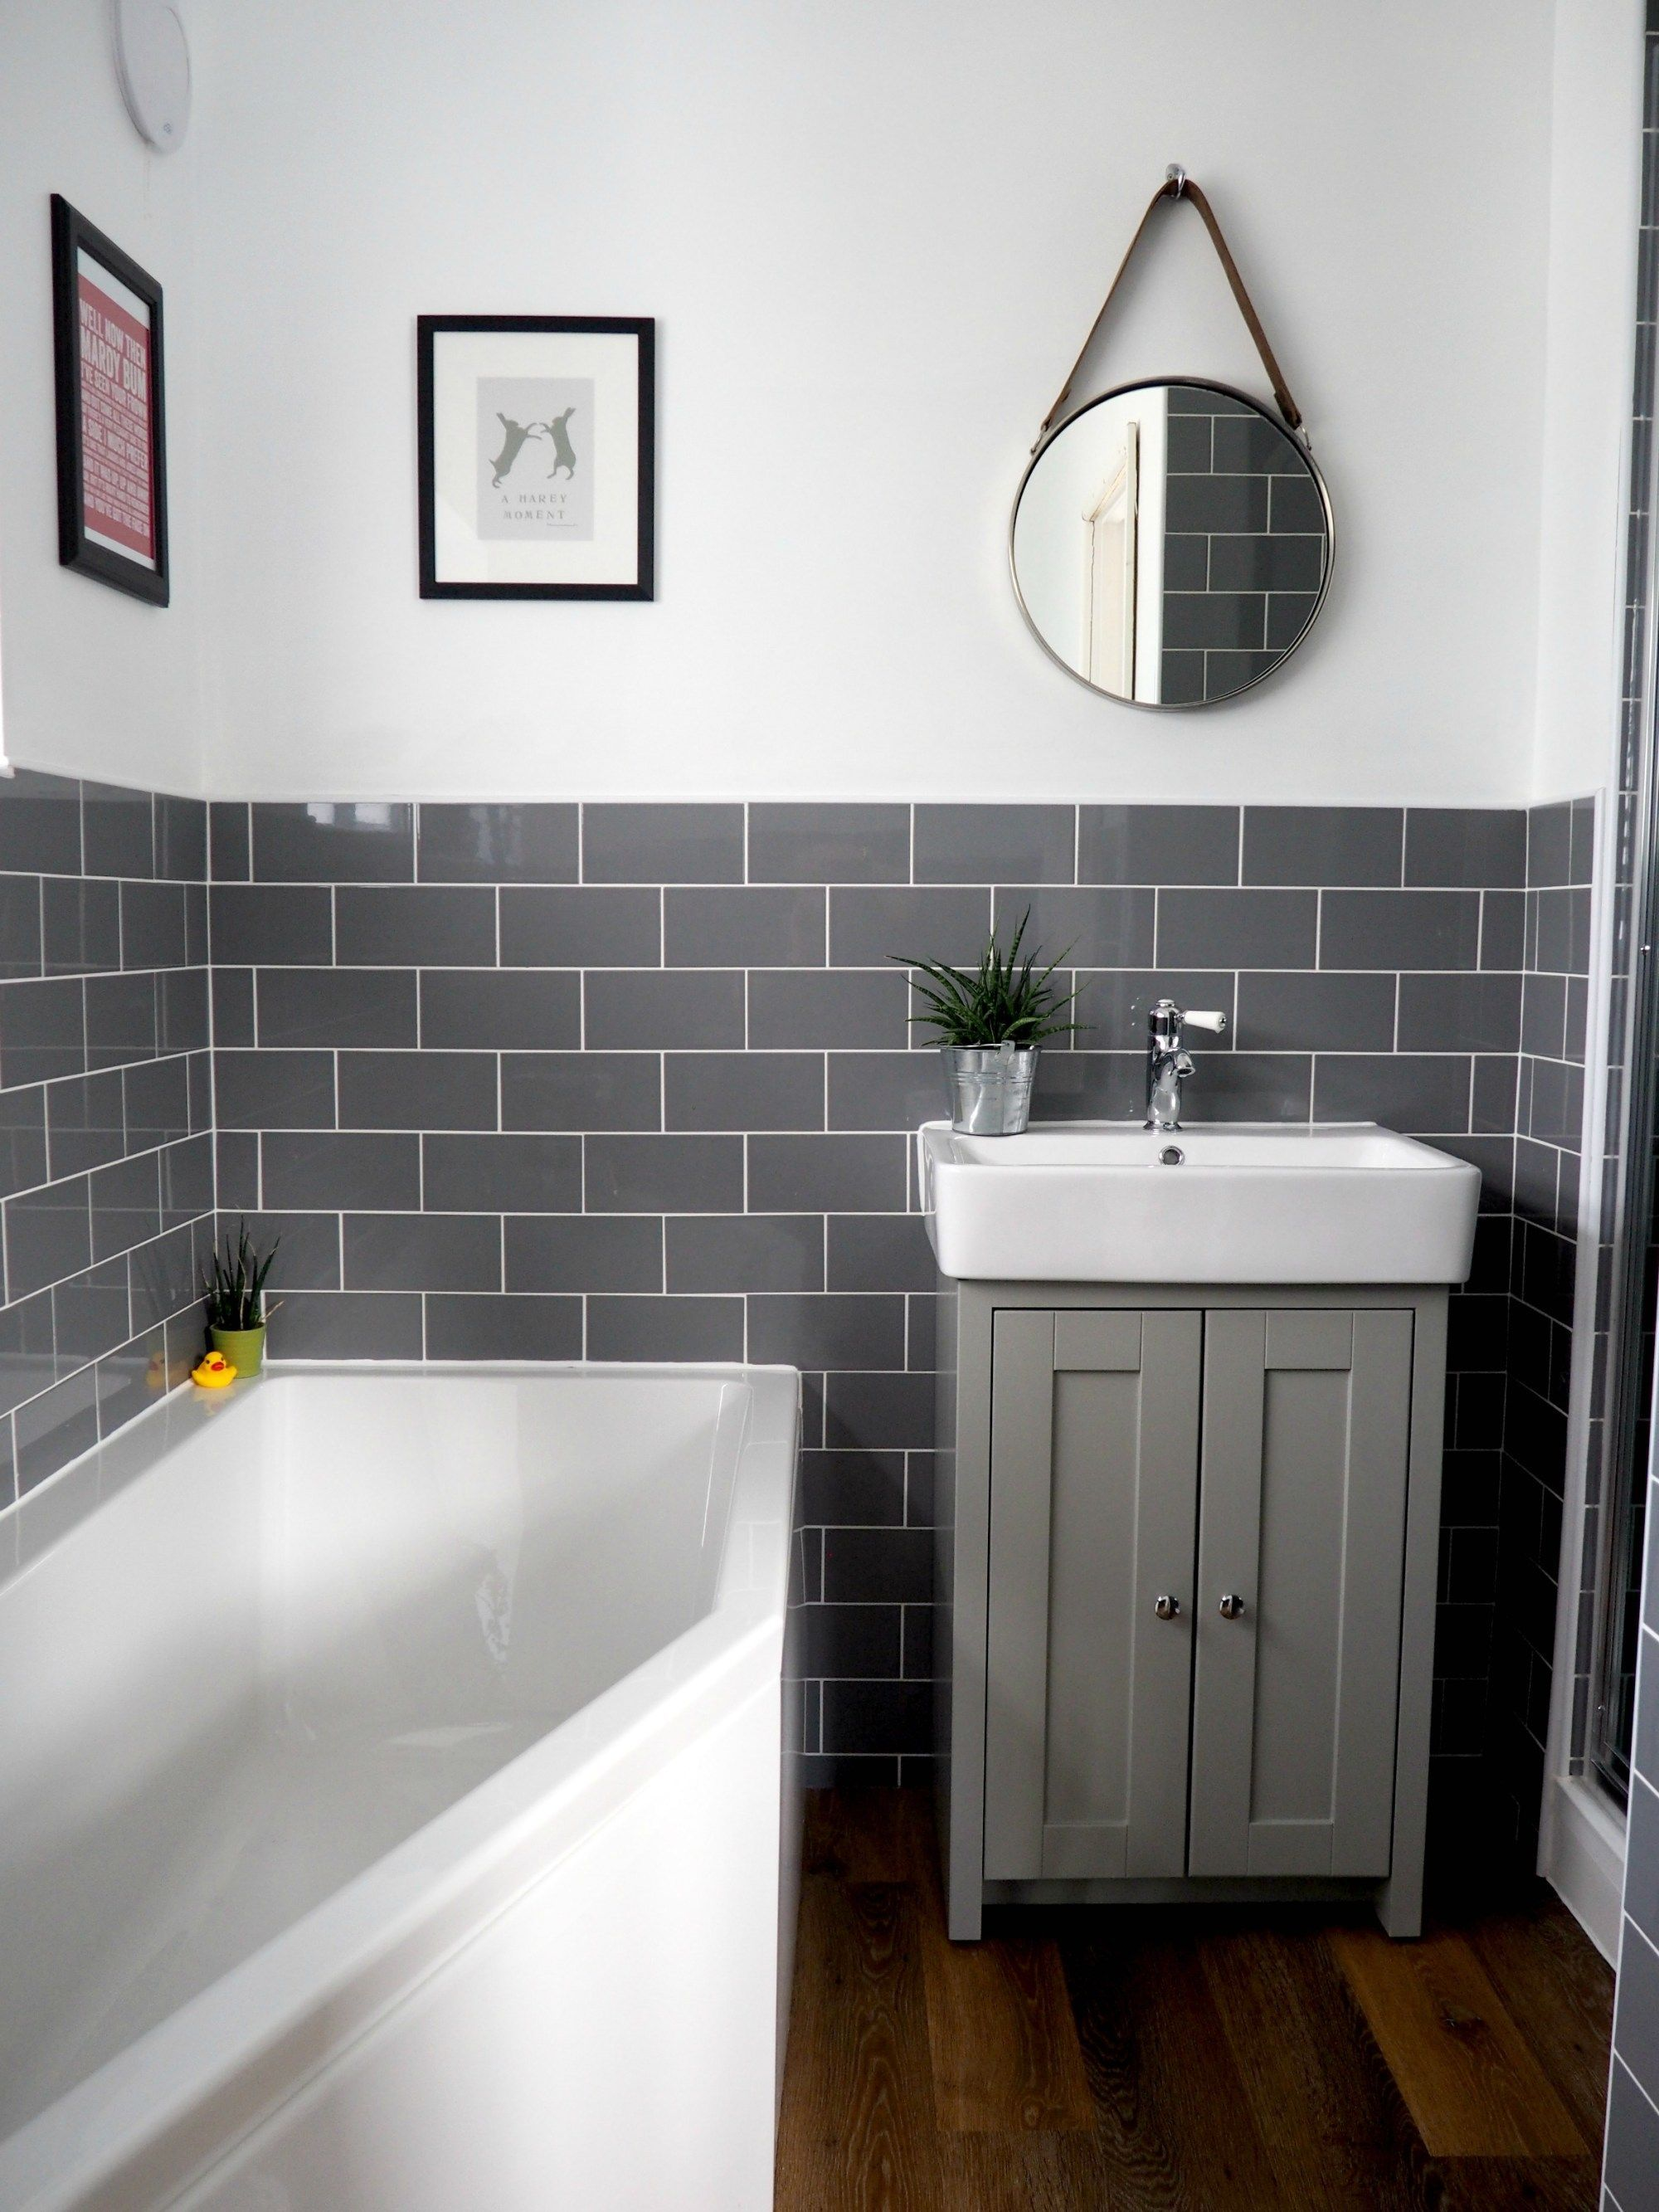 Our brand new bathroom renovation grey subway tiles bathroom our brand new bathroom renovation grey subway tiles dailygadgetfo Choice Image